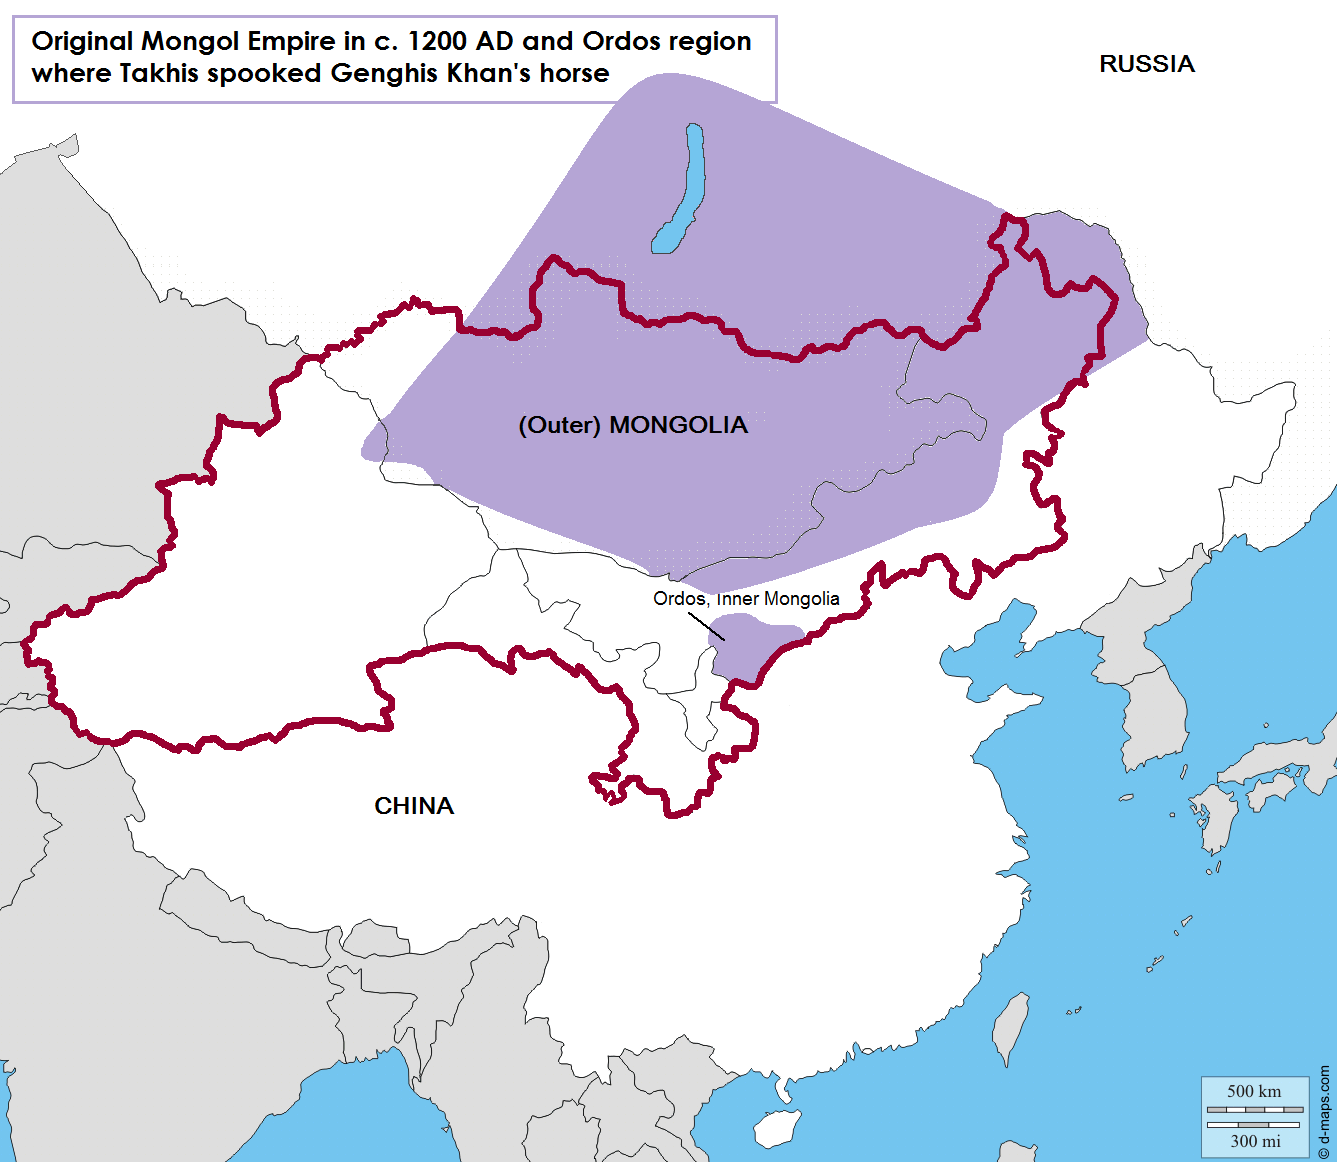 Cradle of Genghis Khan's Mongol empire and Ordos region in c ... on persian empire map, holy roman empire, kublai khan, kubla khan empire map, genghis khan reign map, ivan the terrible empire map, kublai khan map, tang dynasty, ottoman empire, yuan dynasty, julius caesar empire map, japan empire map, vlad the impaler empire map, song dynasty, great khan map, mughal empire, ghengis khan empire map, timur empire map, tamerlane empire map, genghis khan conquering map, western xia map, khanate empire map, mongolian empire map, qing dynasty, genghis khan dynasty map, austria hungary empire map, ming dynasty, roman empire, suleiman the magnificent empire map, abbasid caliphate, byzantine empire, han dynasty, russian empire, spanish empire, golden horde, golden horde empire map,